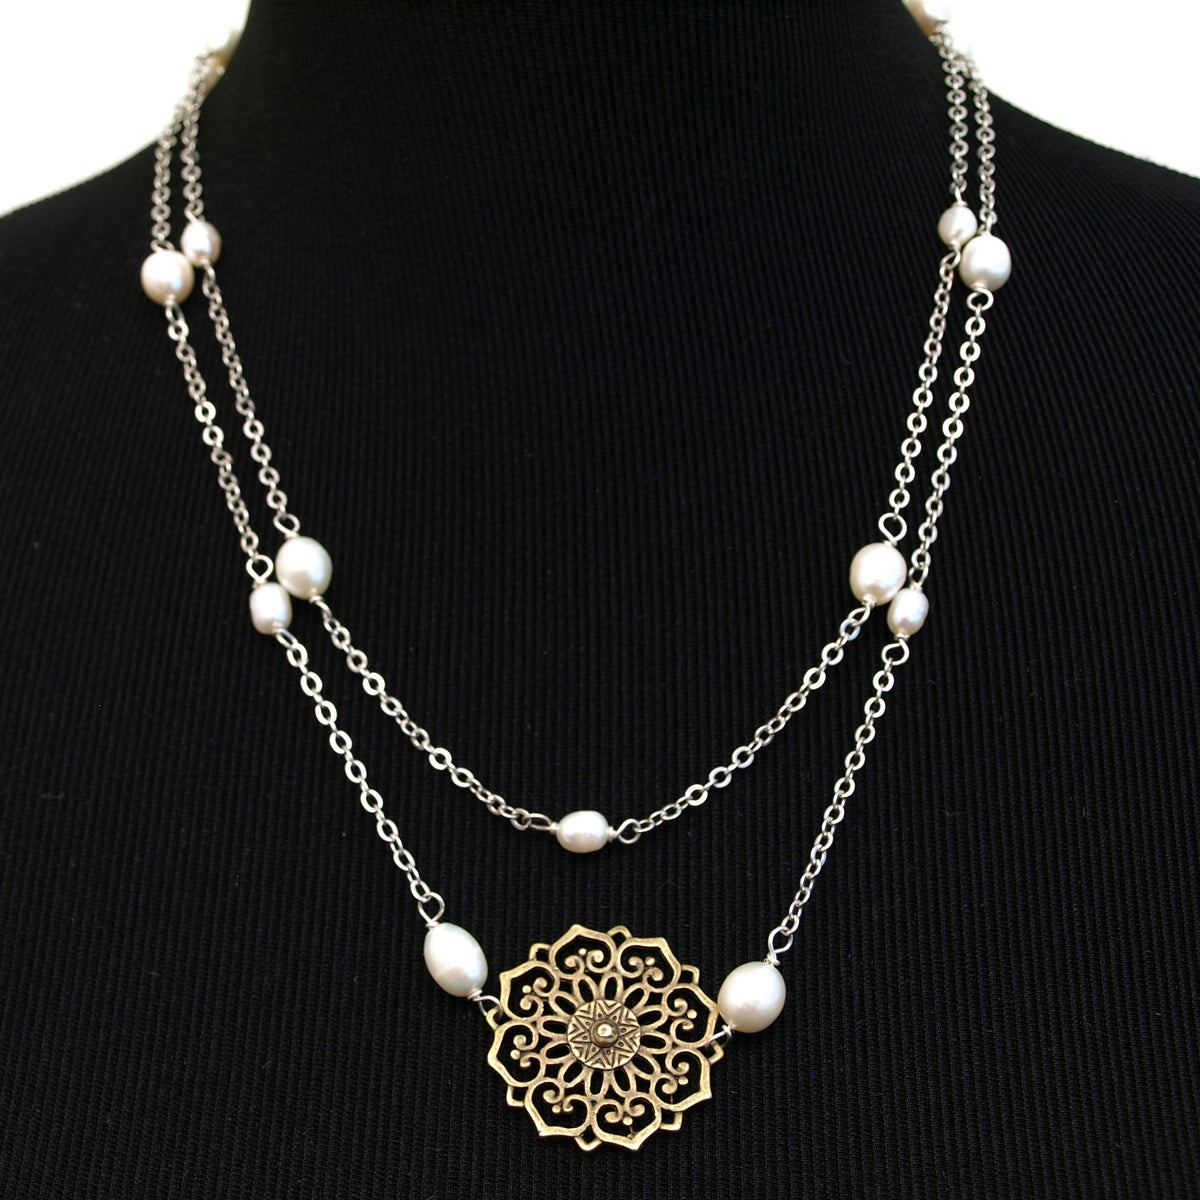 Vintage Floral Medallion Pendant Long Necklace, 43.3 inches